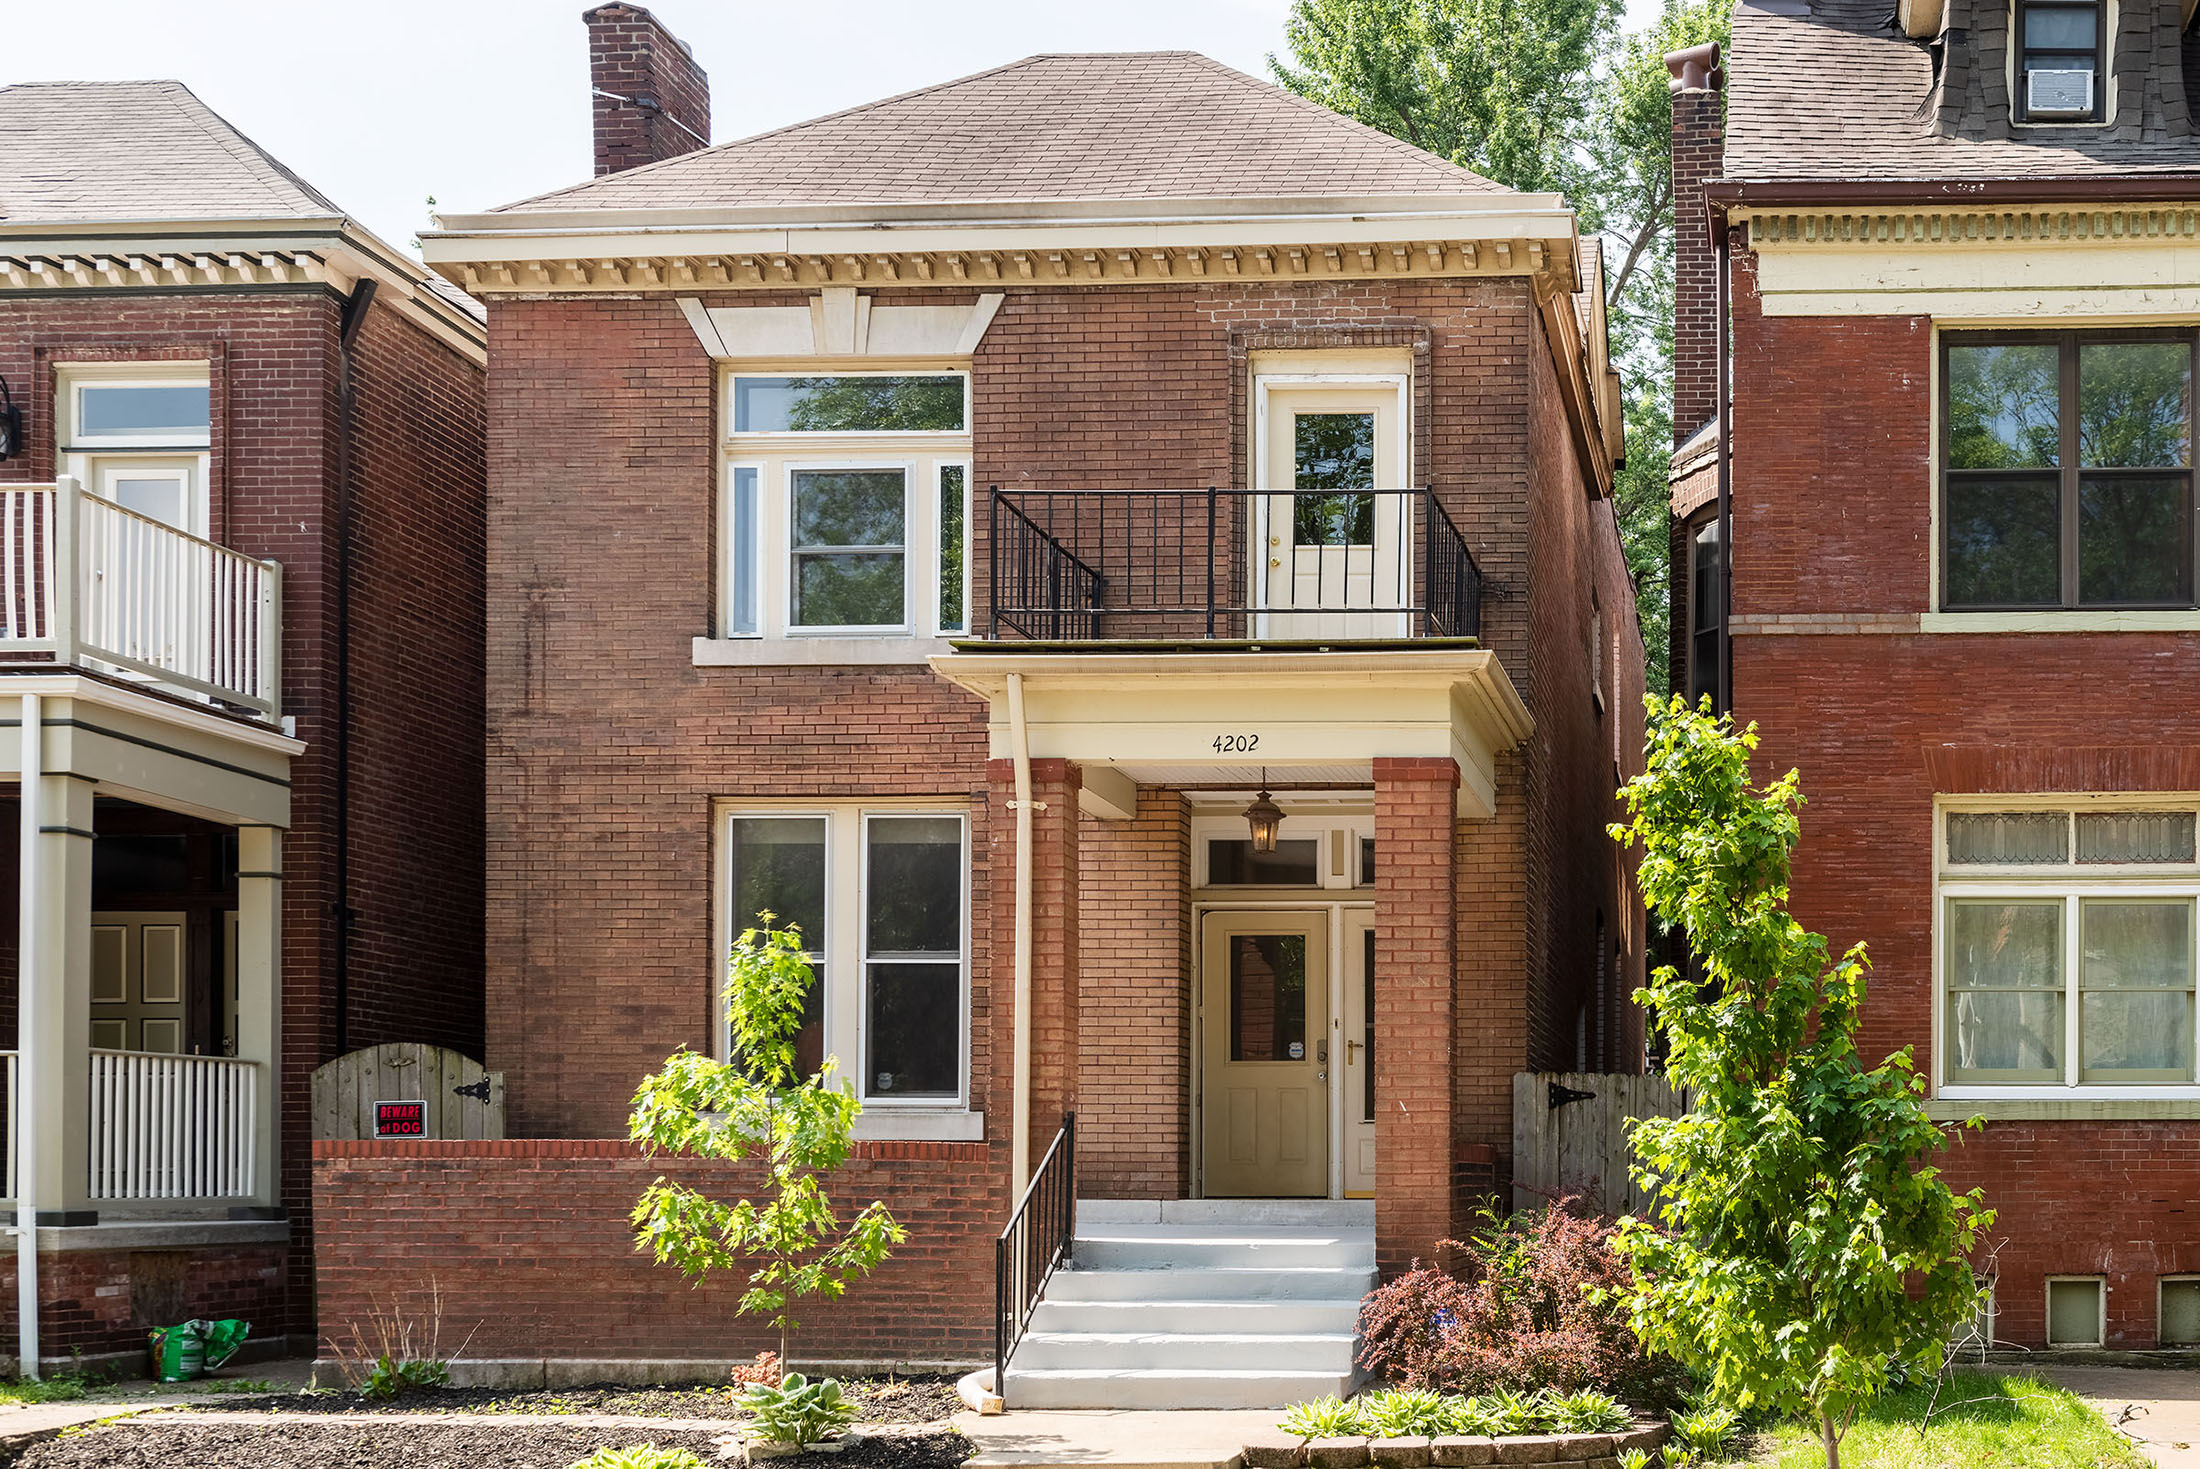 4202 Cleveland Ave., St. Louis, MO 63110